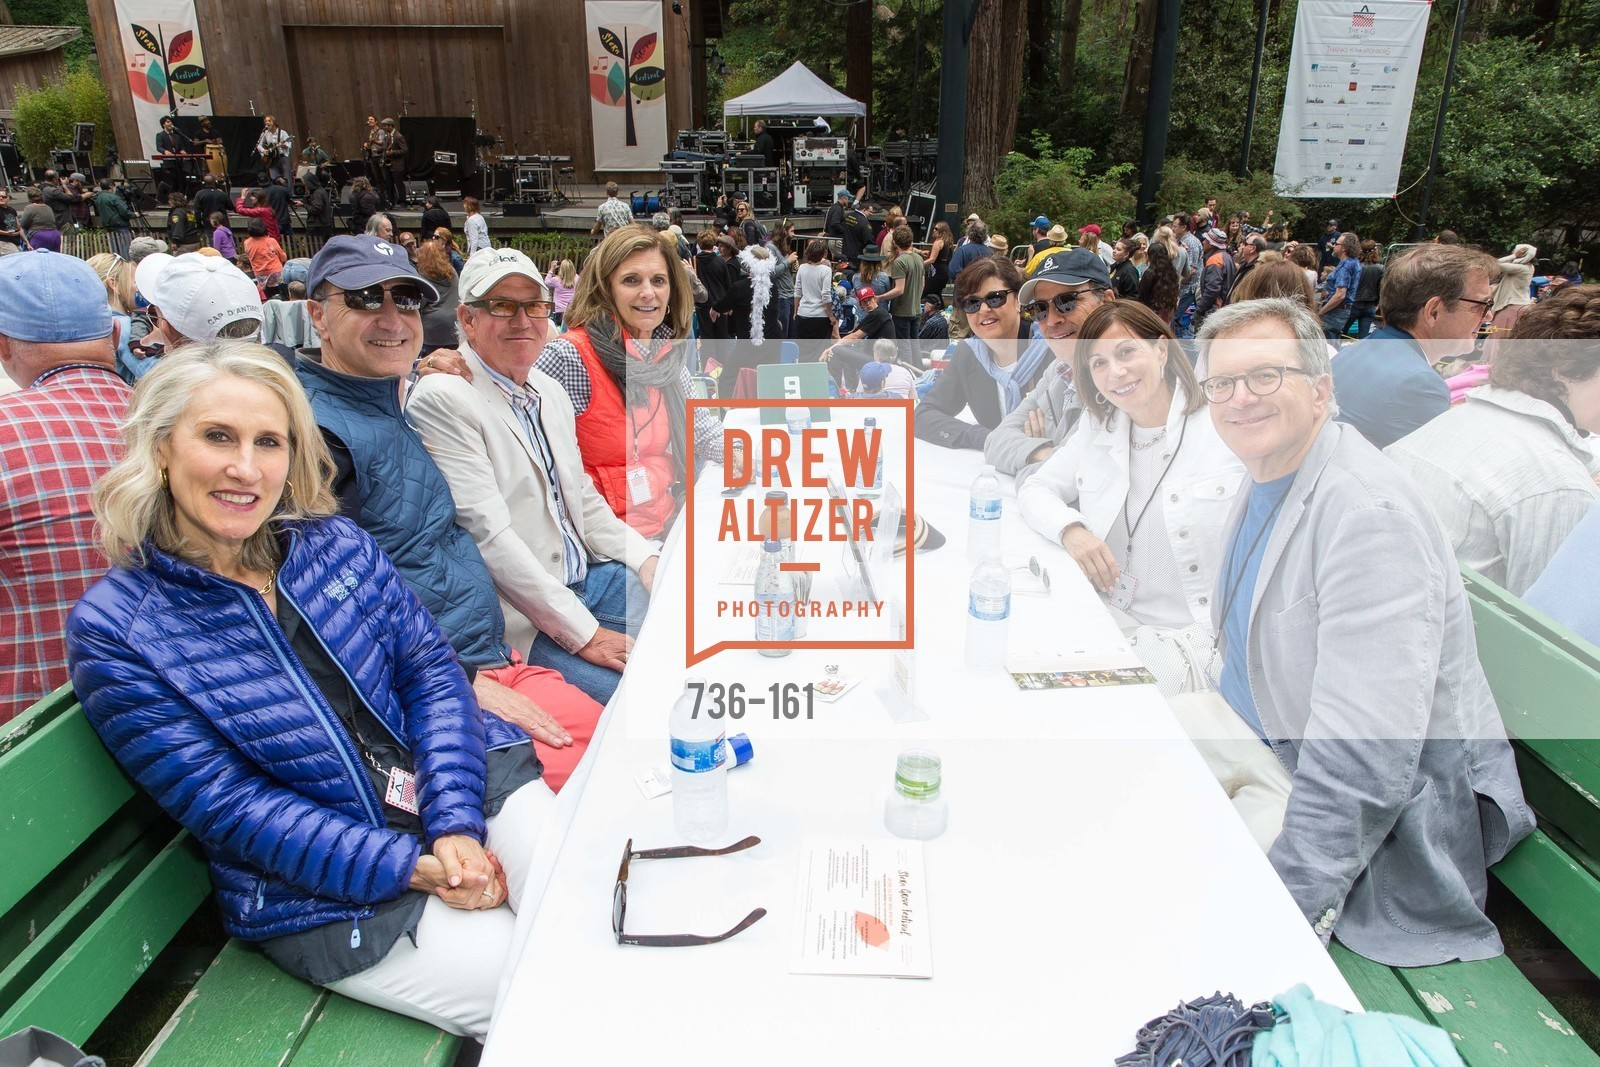 Jamie Myer, Mike Myer, Lisa Schatz, Steven Schatz, THE BIG PICNIC Kicking off  2015 Stern Grove Season, Stern Grove. 2750 19th Avenue, June 14th, 2015,Drew Altizer, Drew Altizer Photography, full-service agency, private events, San Francisco photographer, photographer california